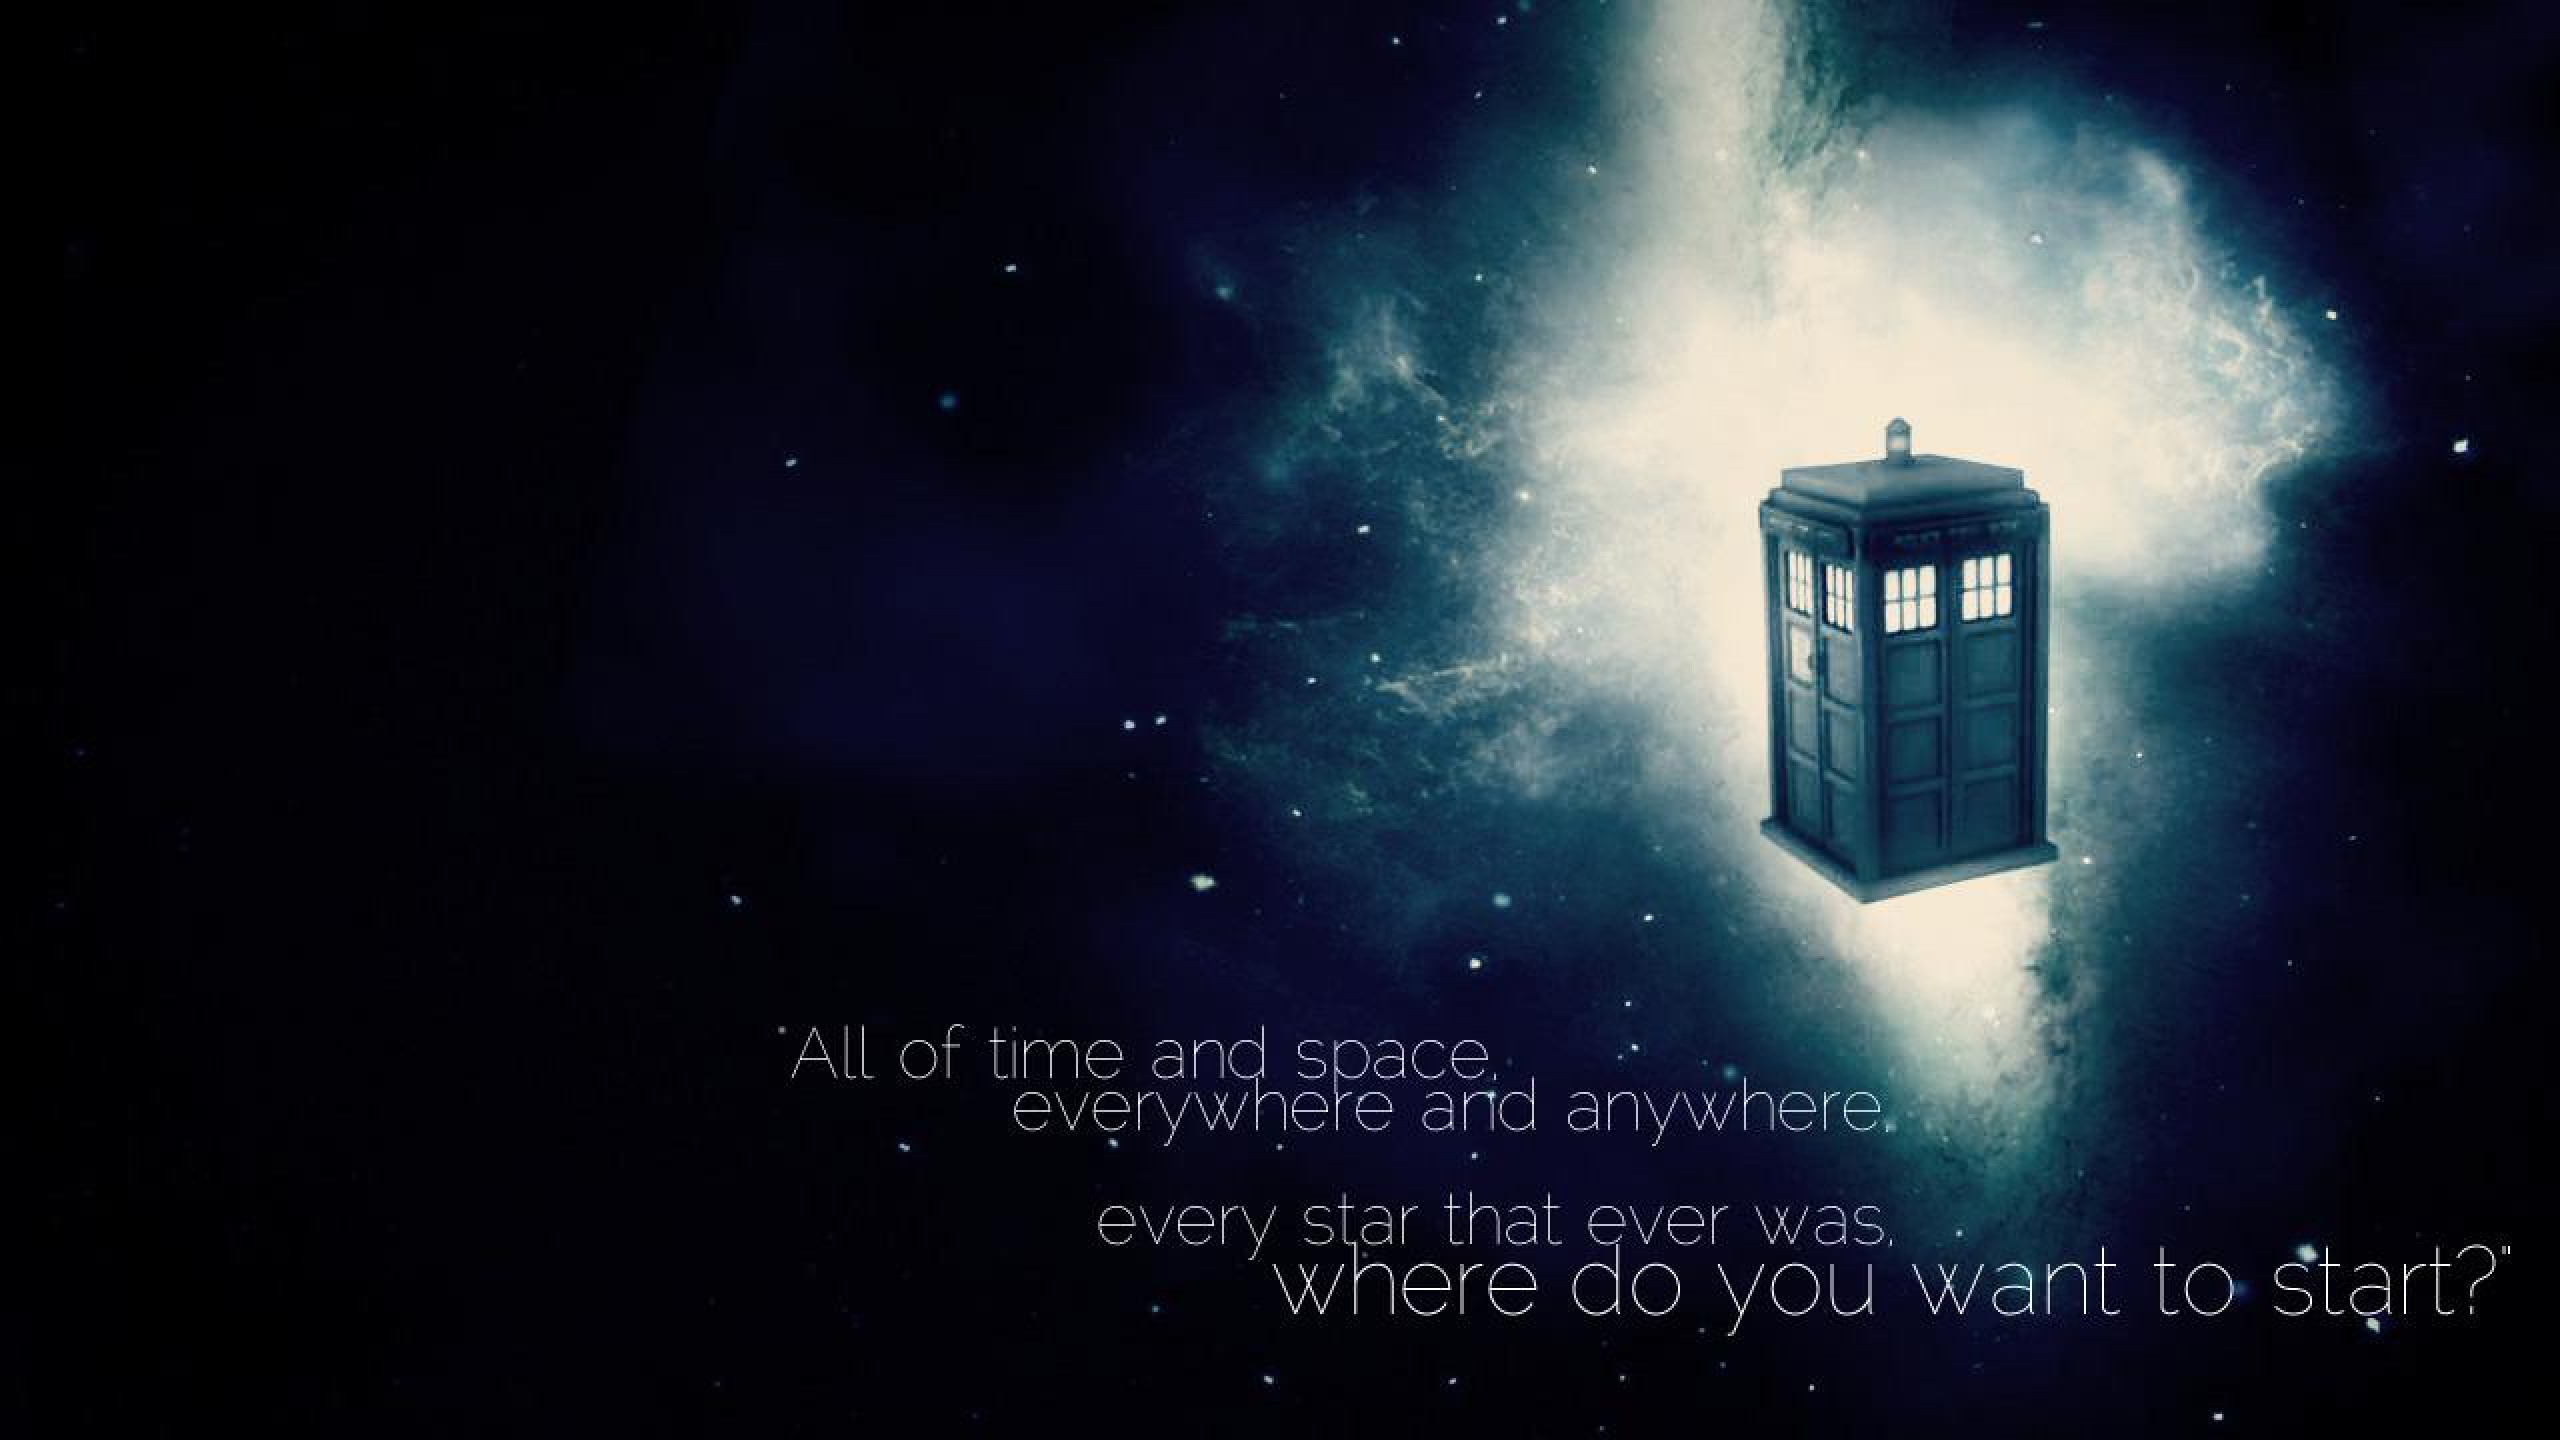 desktop backgrounds doctor who desktop wallpaper 2560x1440